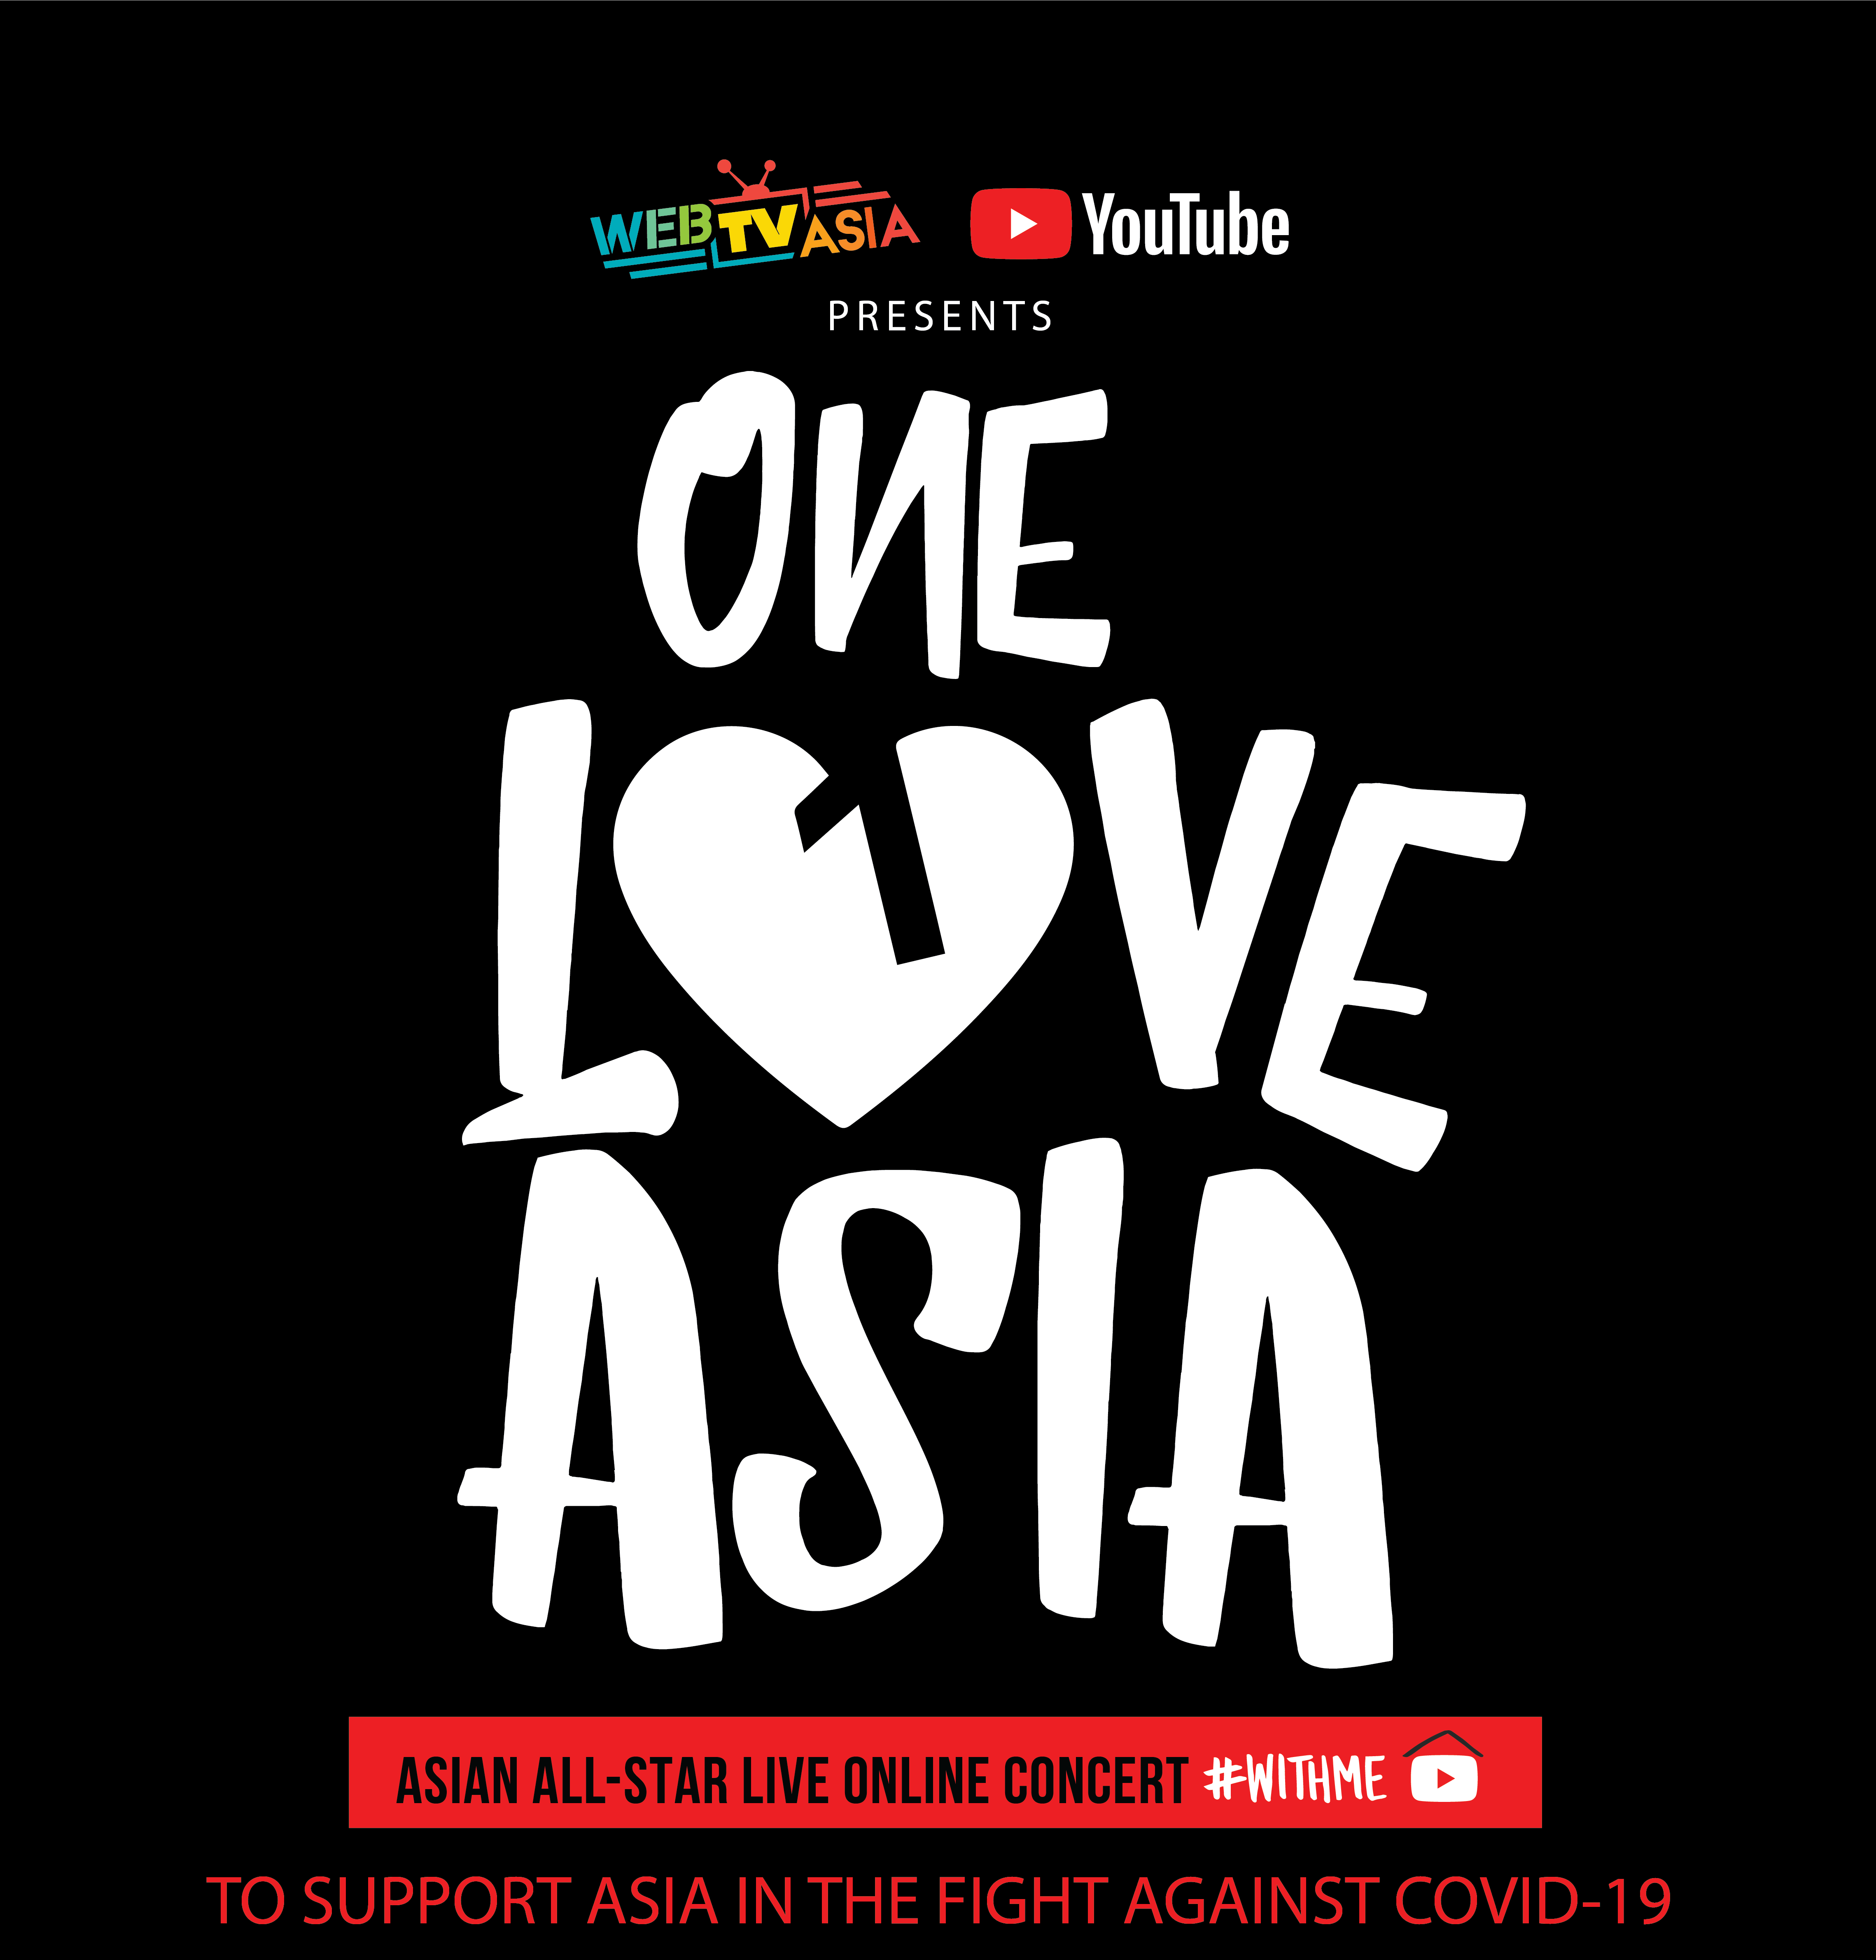 WebTVAsia, YouTube announce 'One Love Asia' live concert in support of UNICEF